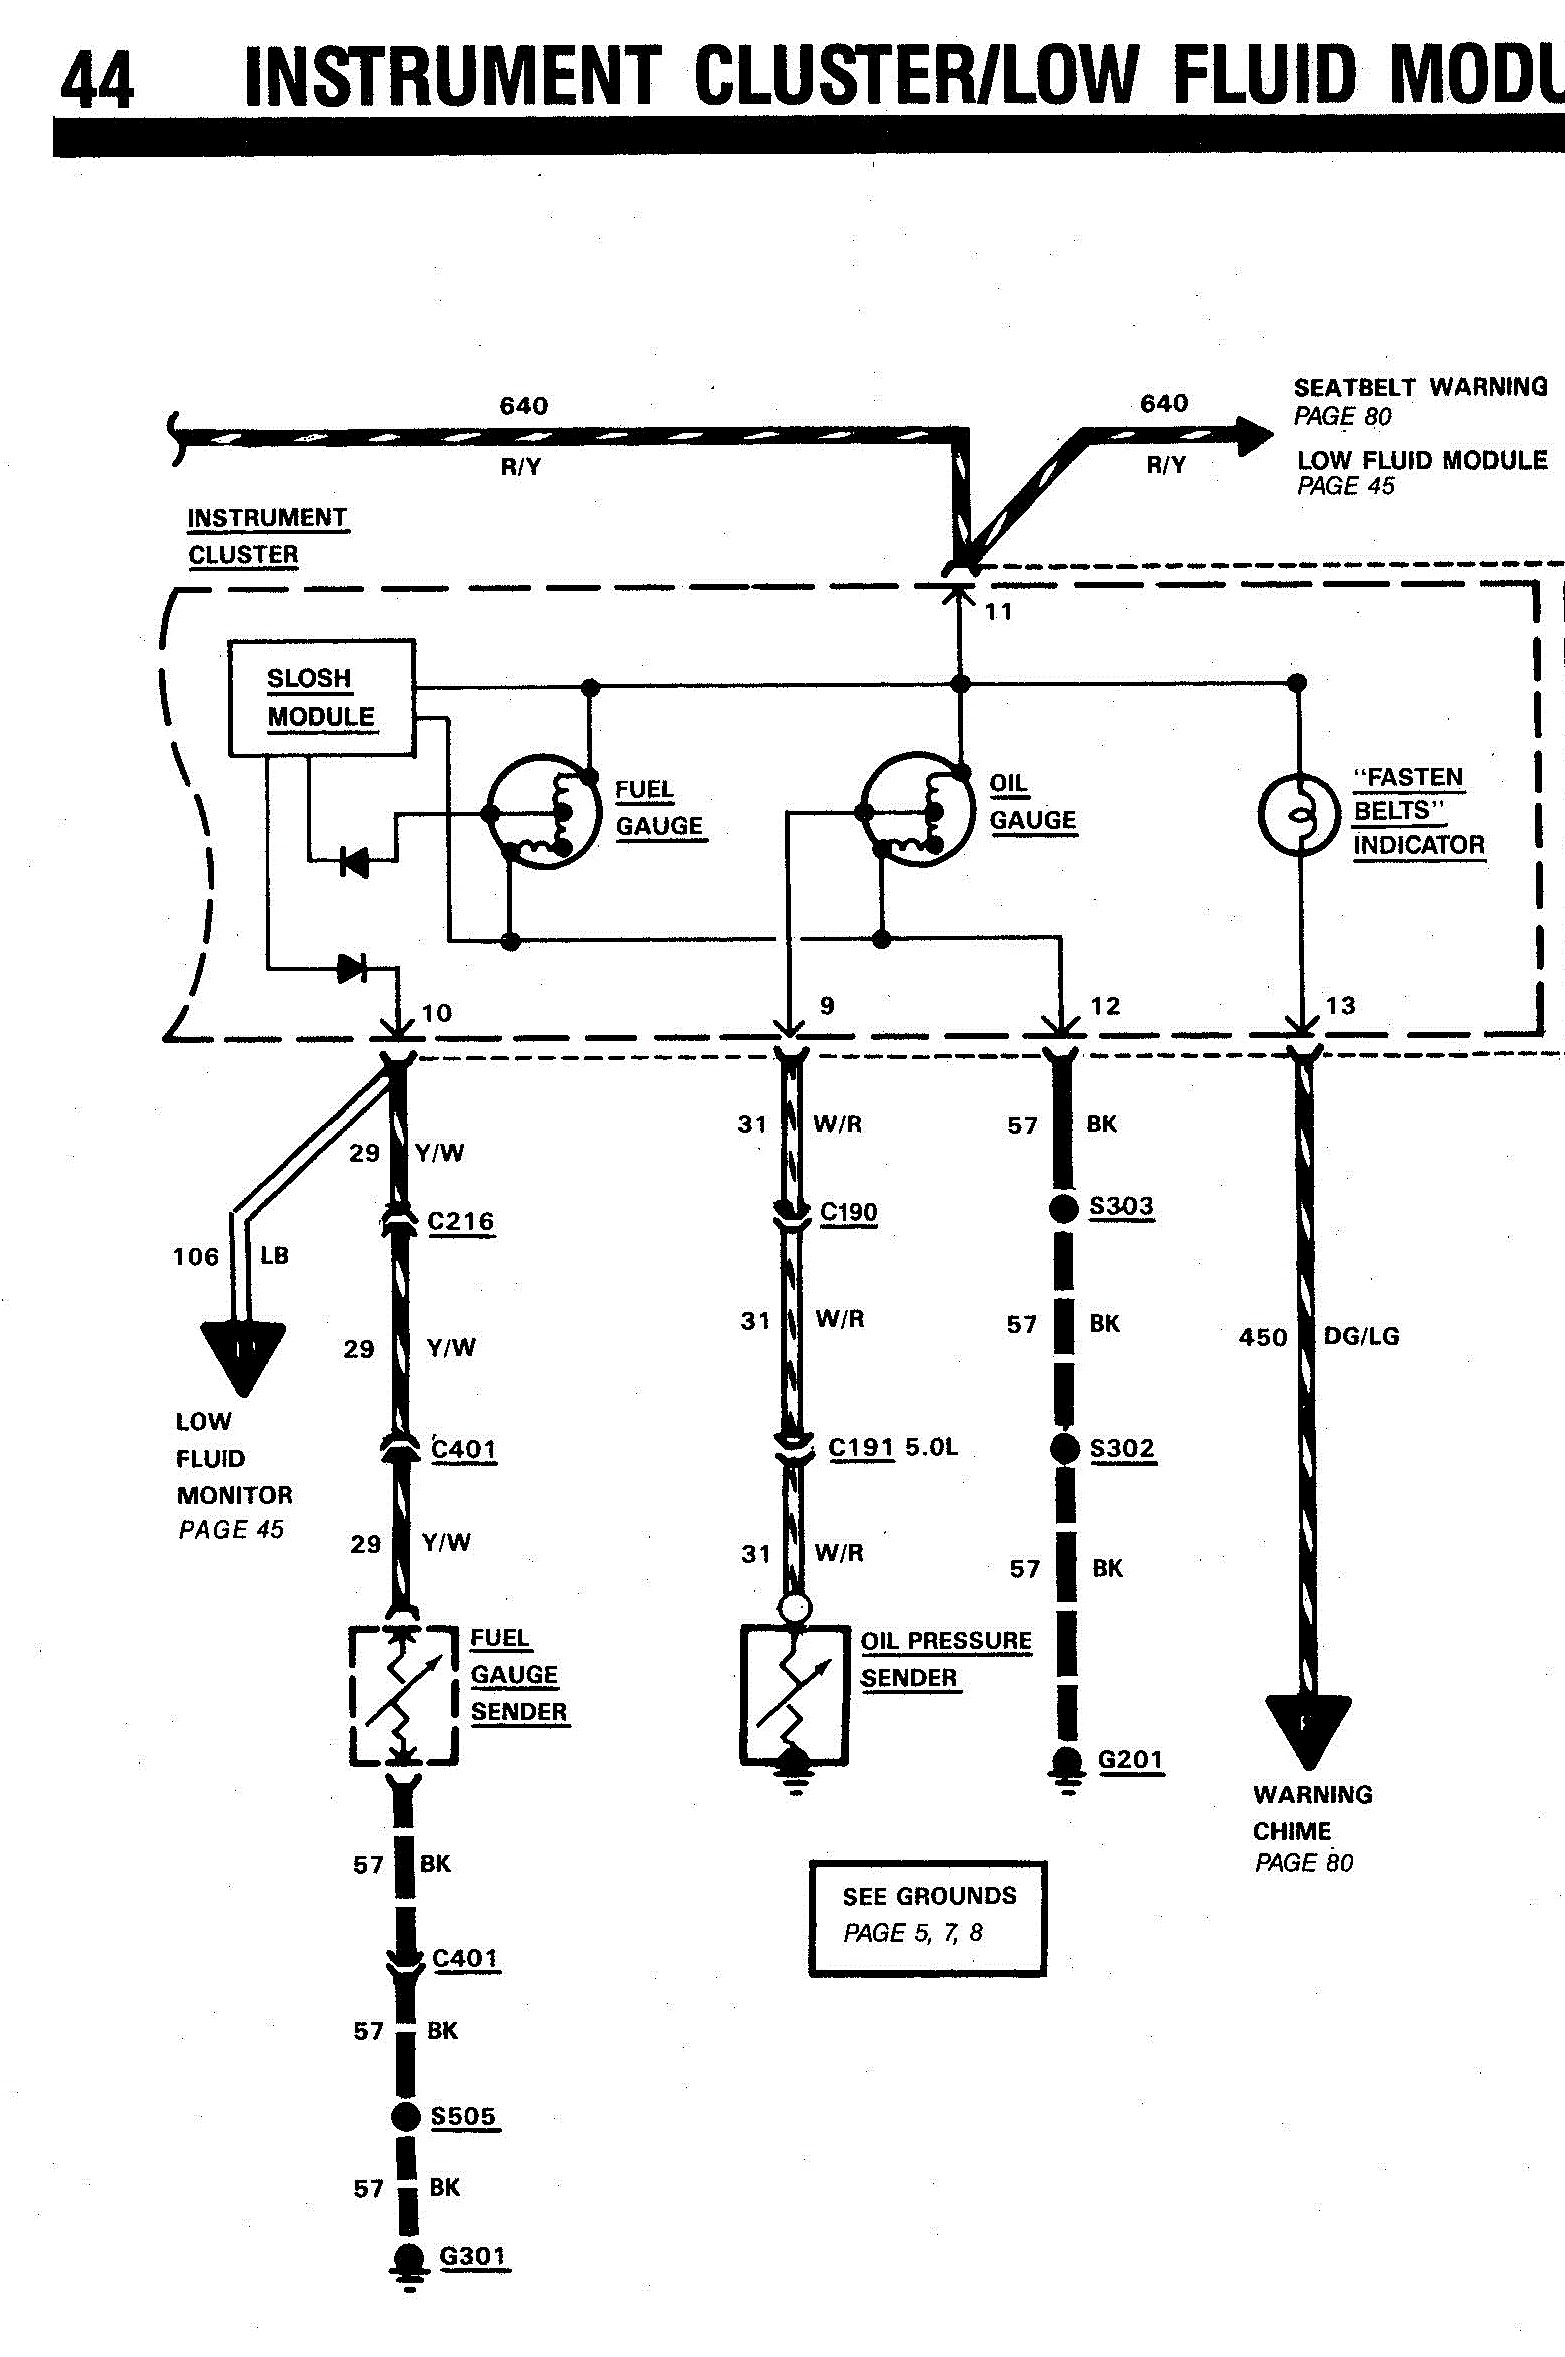 hight resolution of oil gauge wiring diagram wiring diagram mega oil pressure switch wiring diagram oil wiring diagram